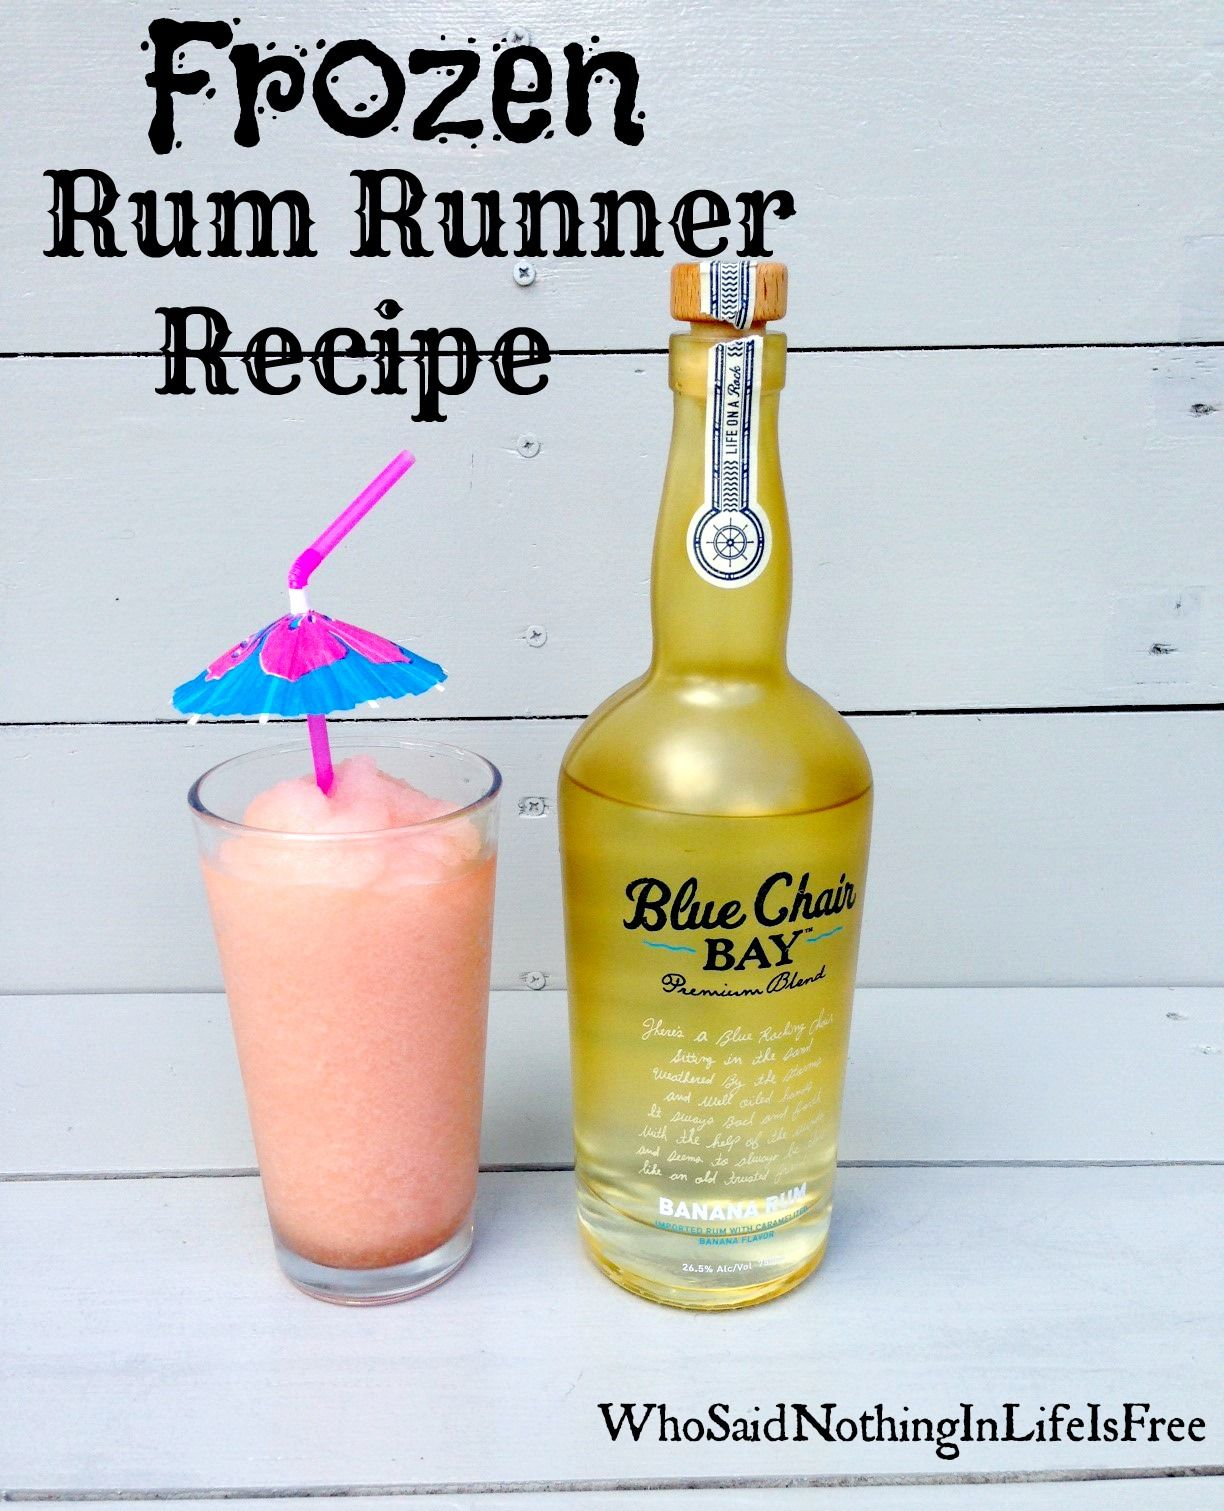 Blue Chair Bay Banana Rum Cream Calories Toddler Shower Frozen Runner Cocktail Made With